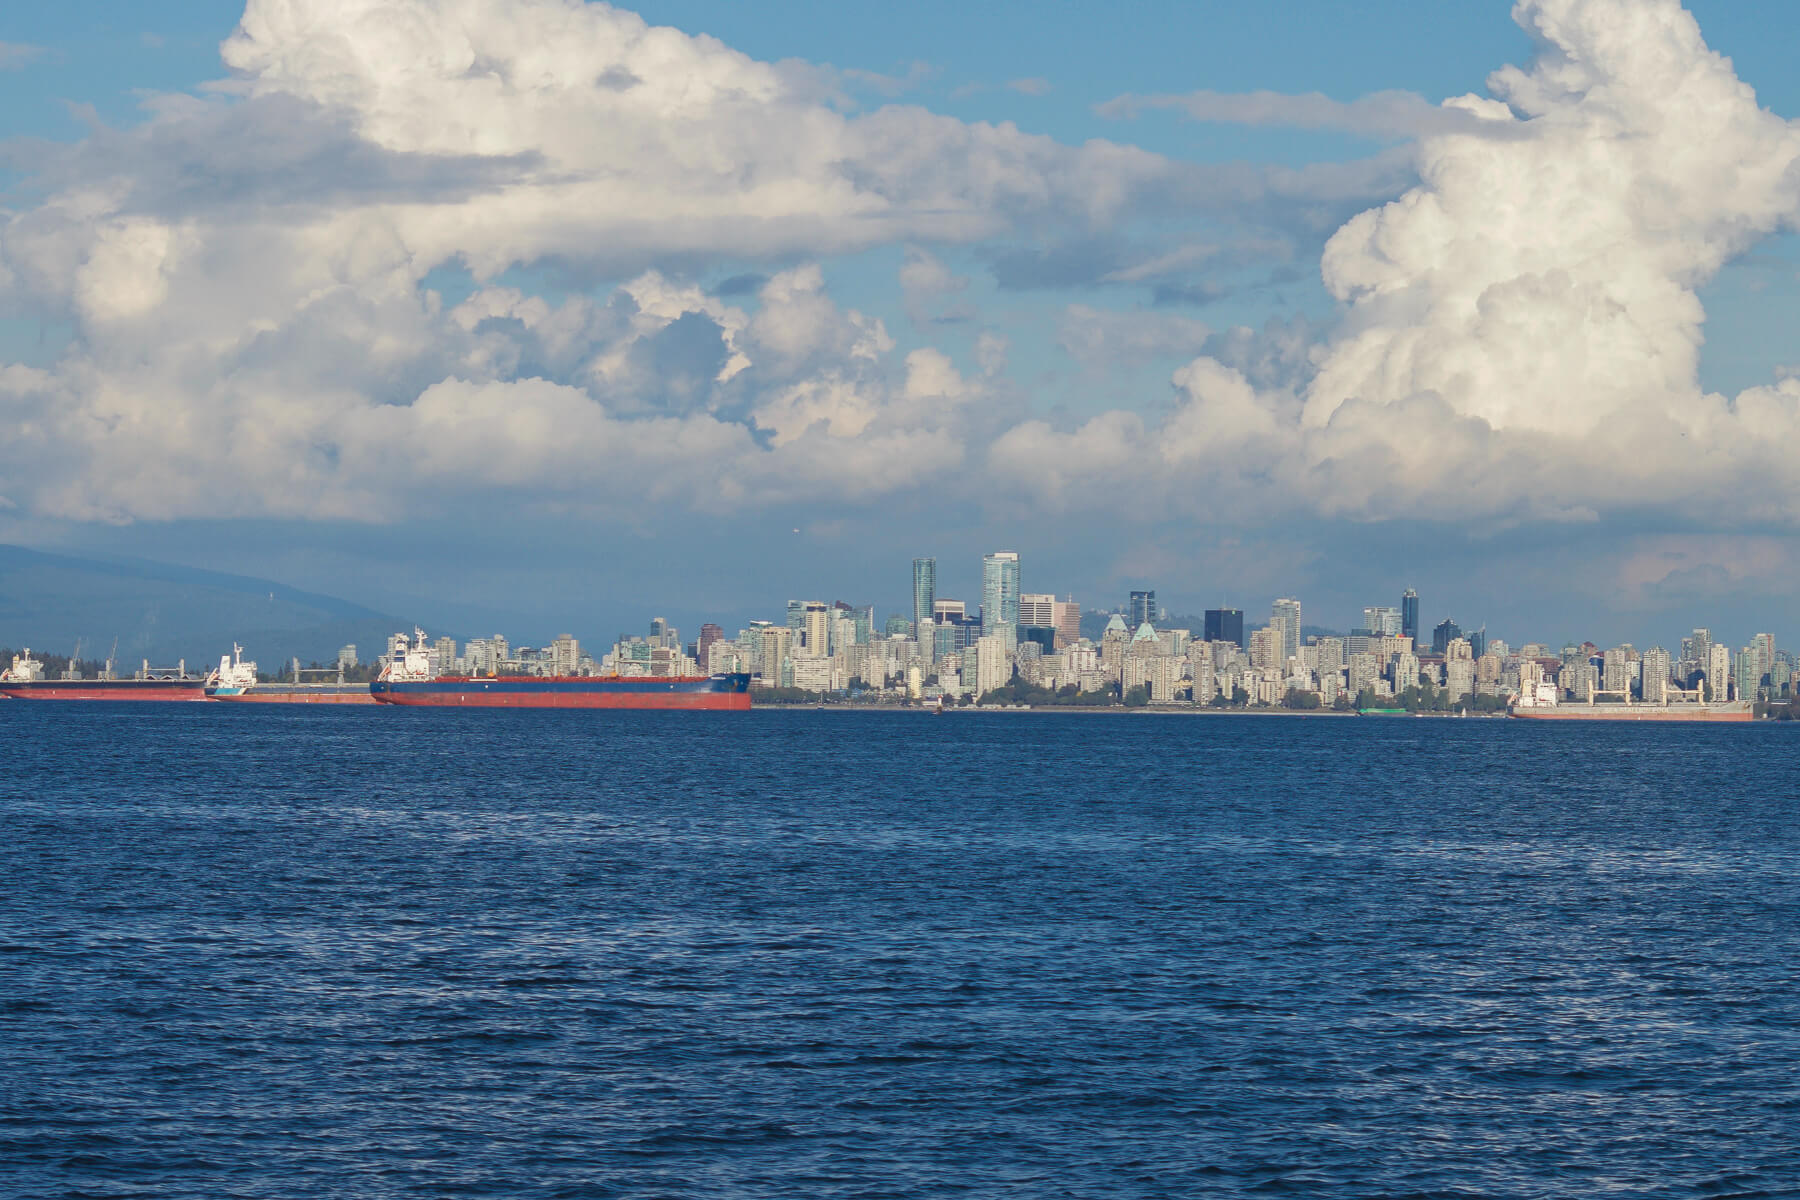 Vancouver city and ships